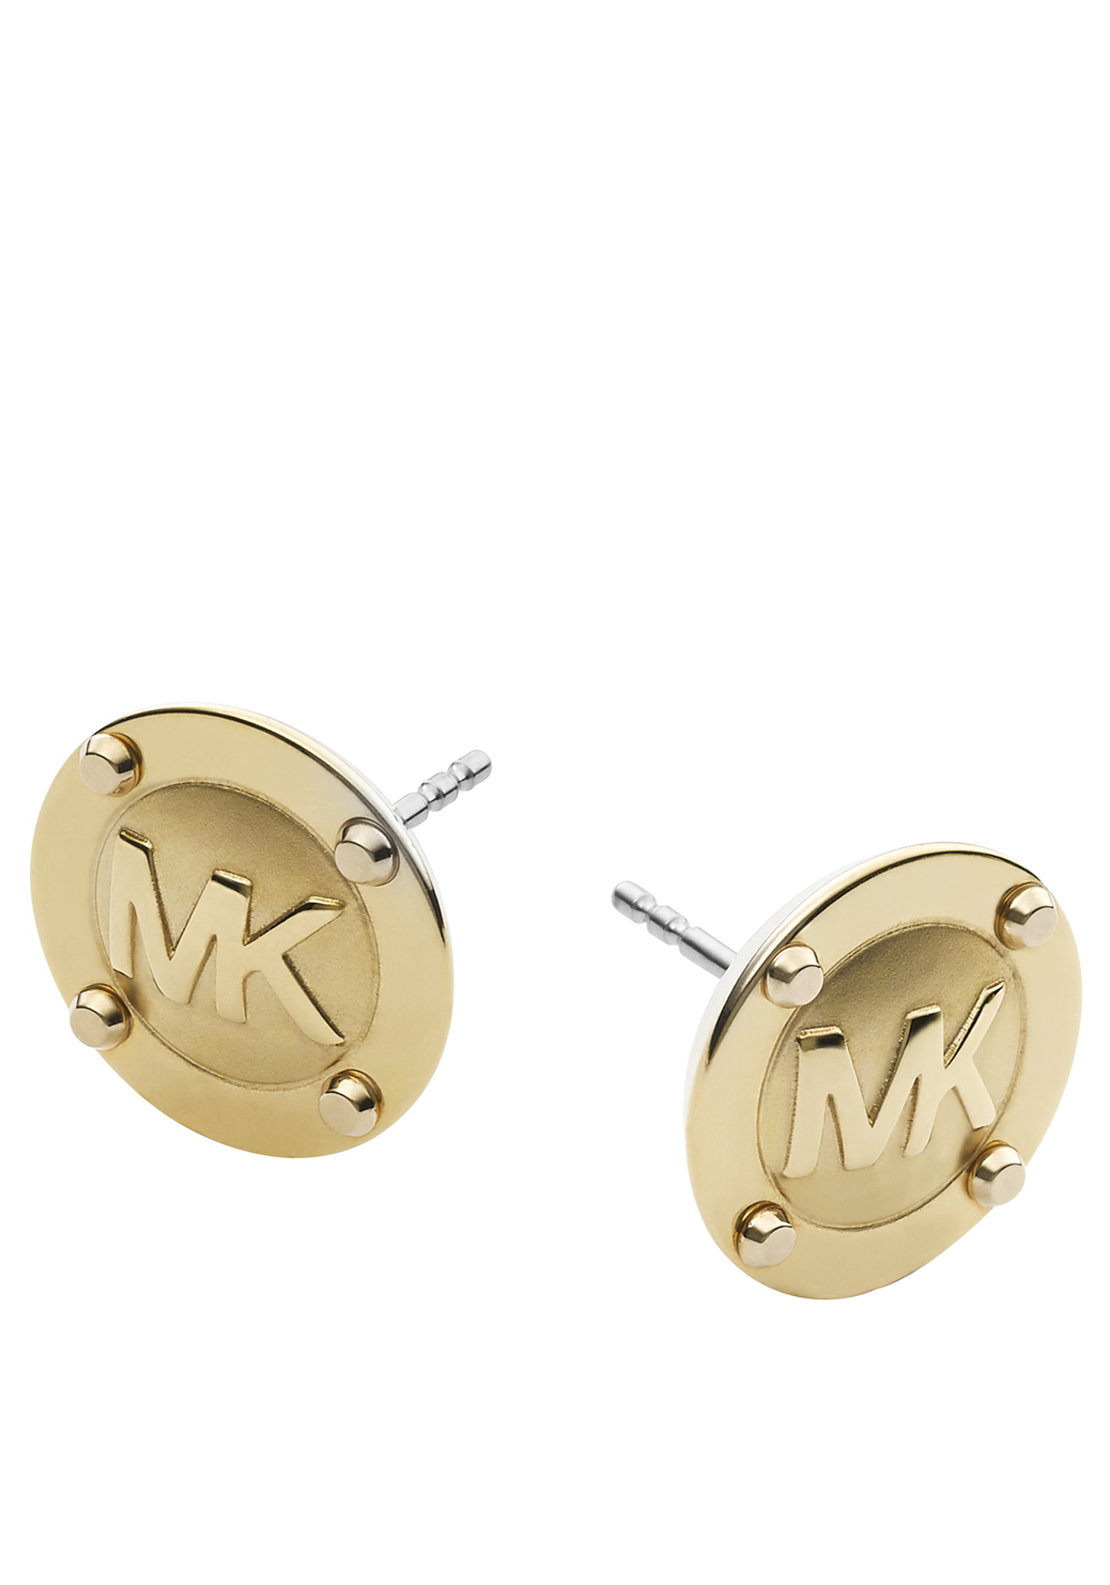 Michael Kors Womens Branded Button Stud Earrings, Gold